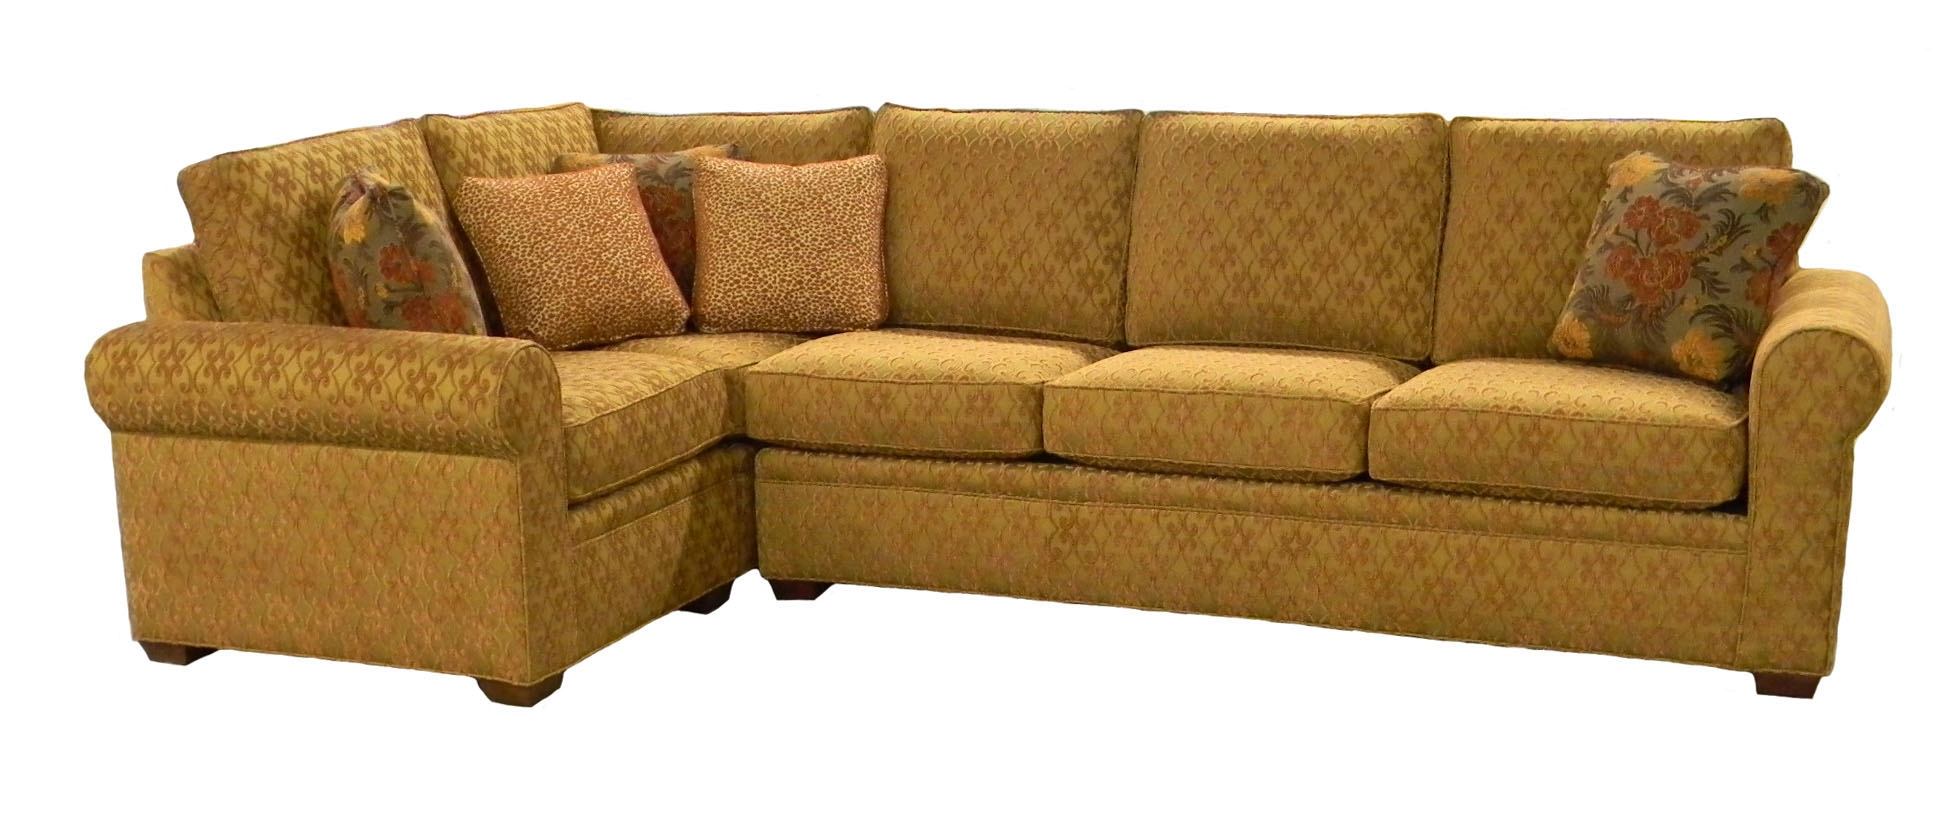 Featured Image of Compact Sectional Sofas